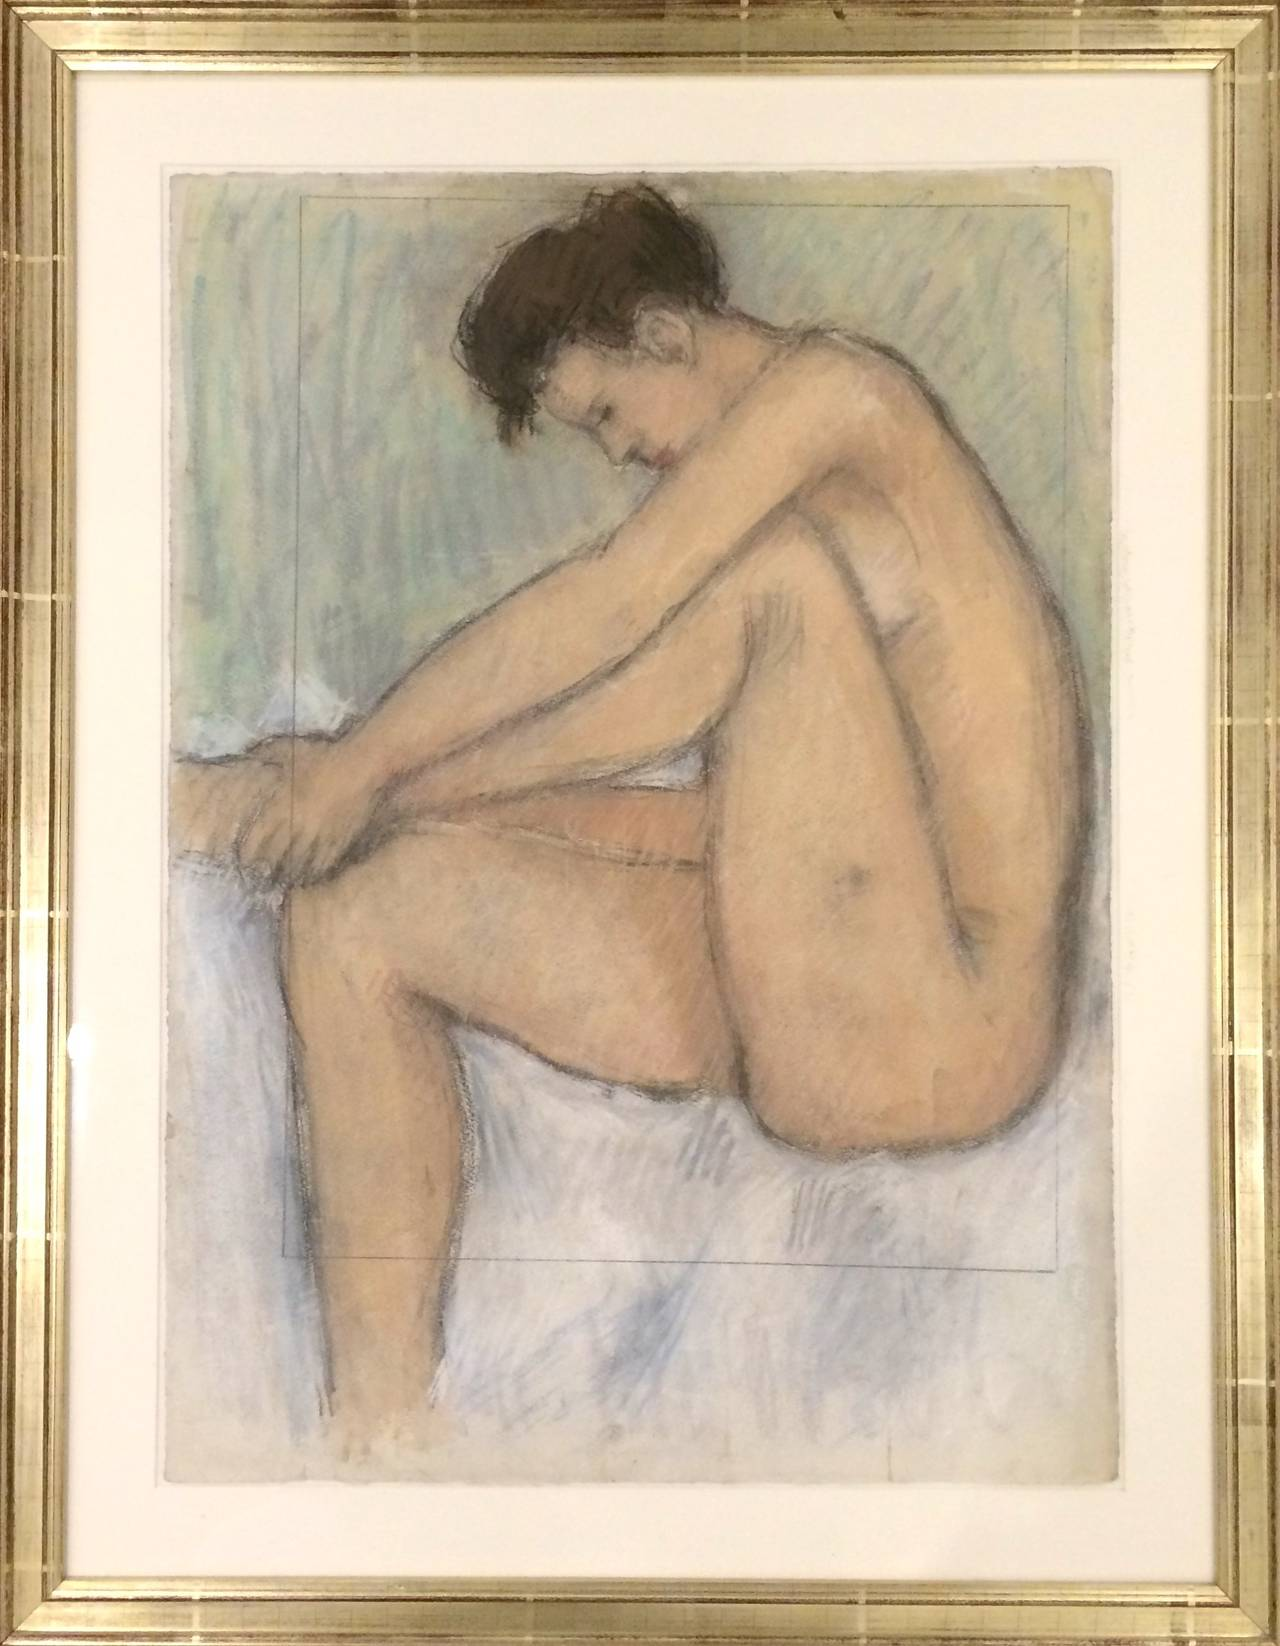 Nude Drawing Pastel on Paper